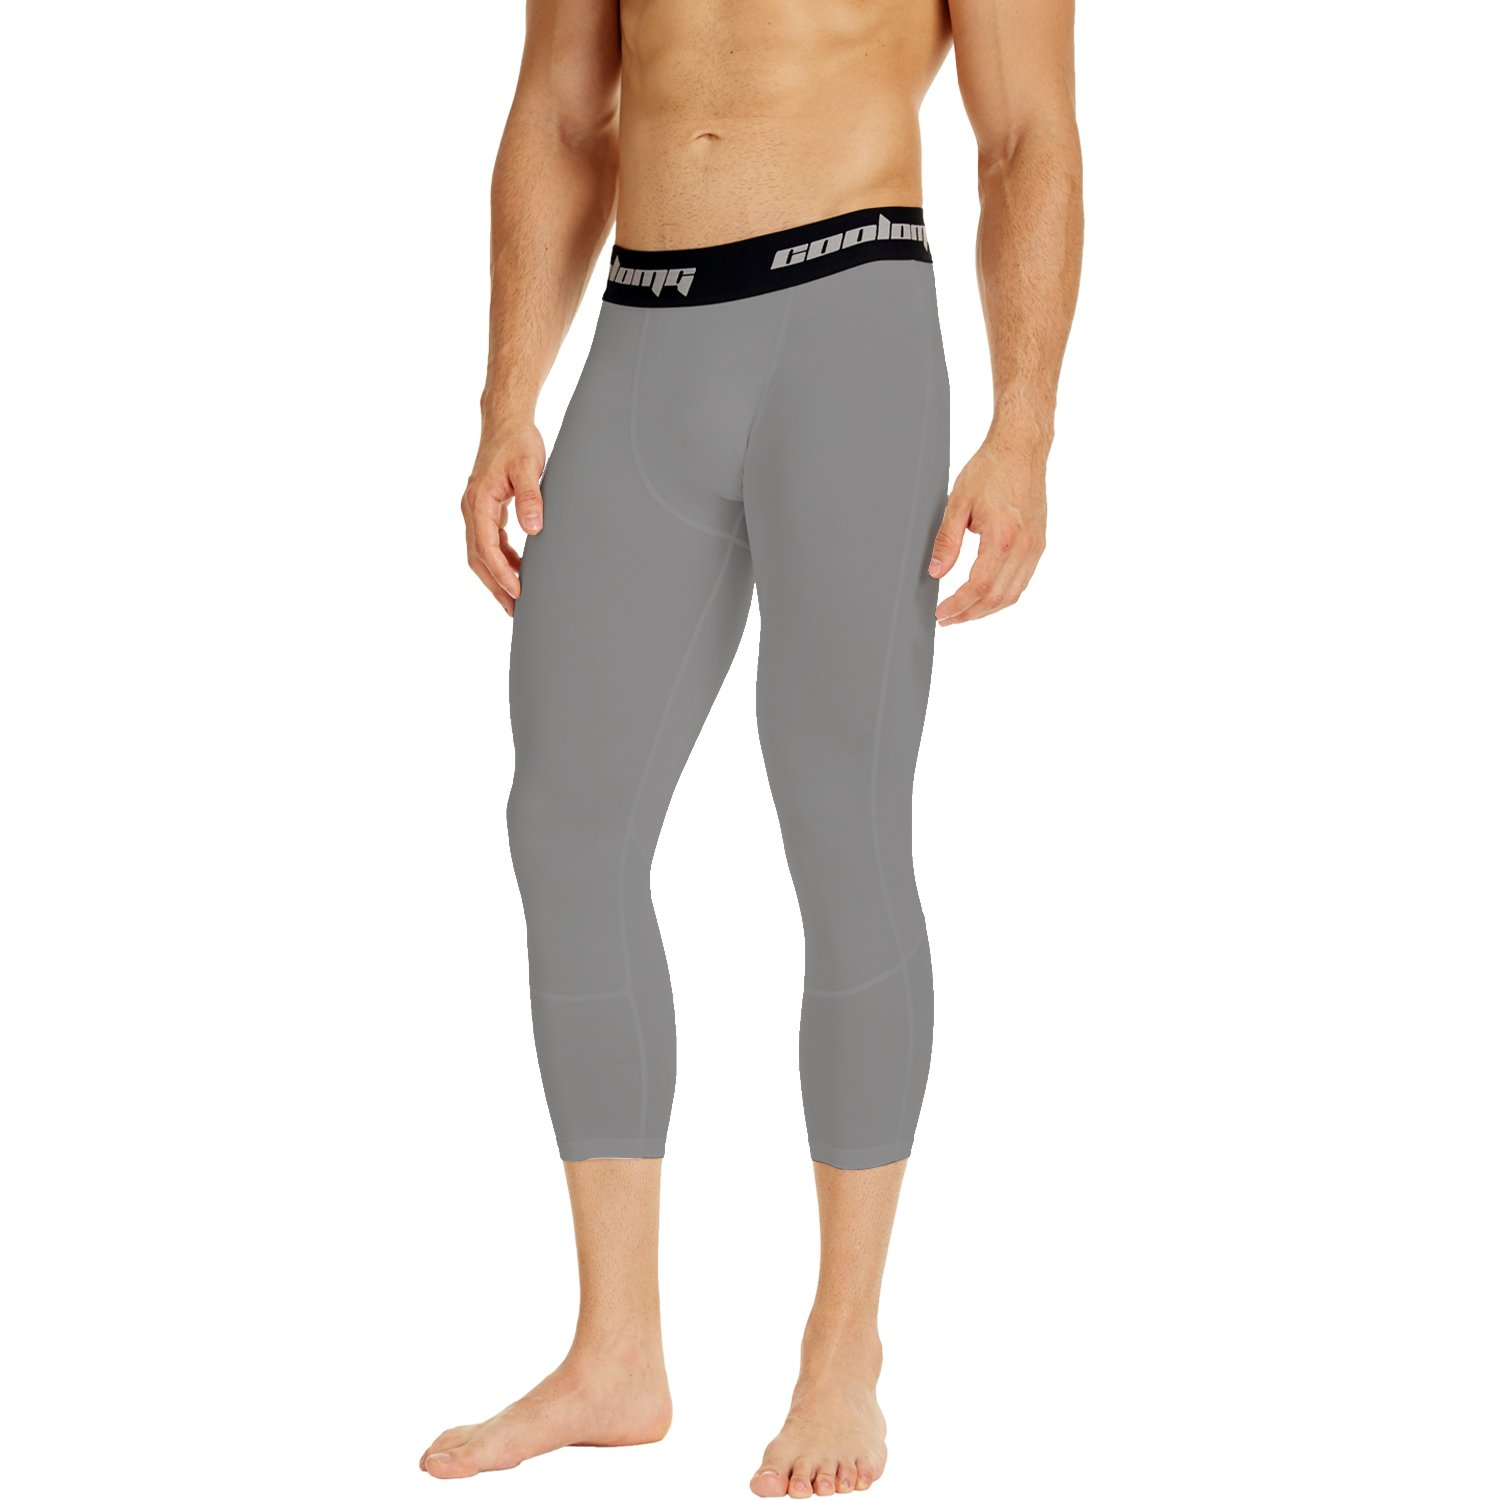 Best Rated In Men's Yoga Clothing & Helpful Customer